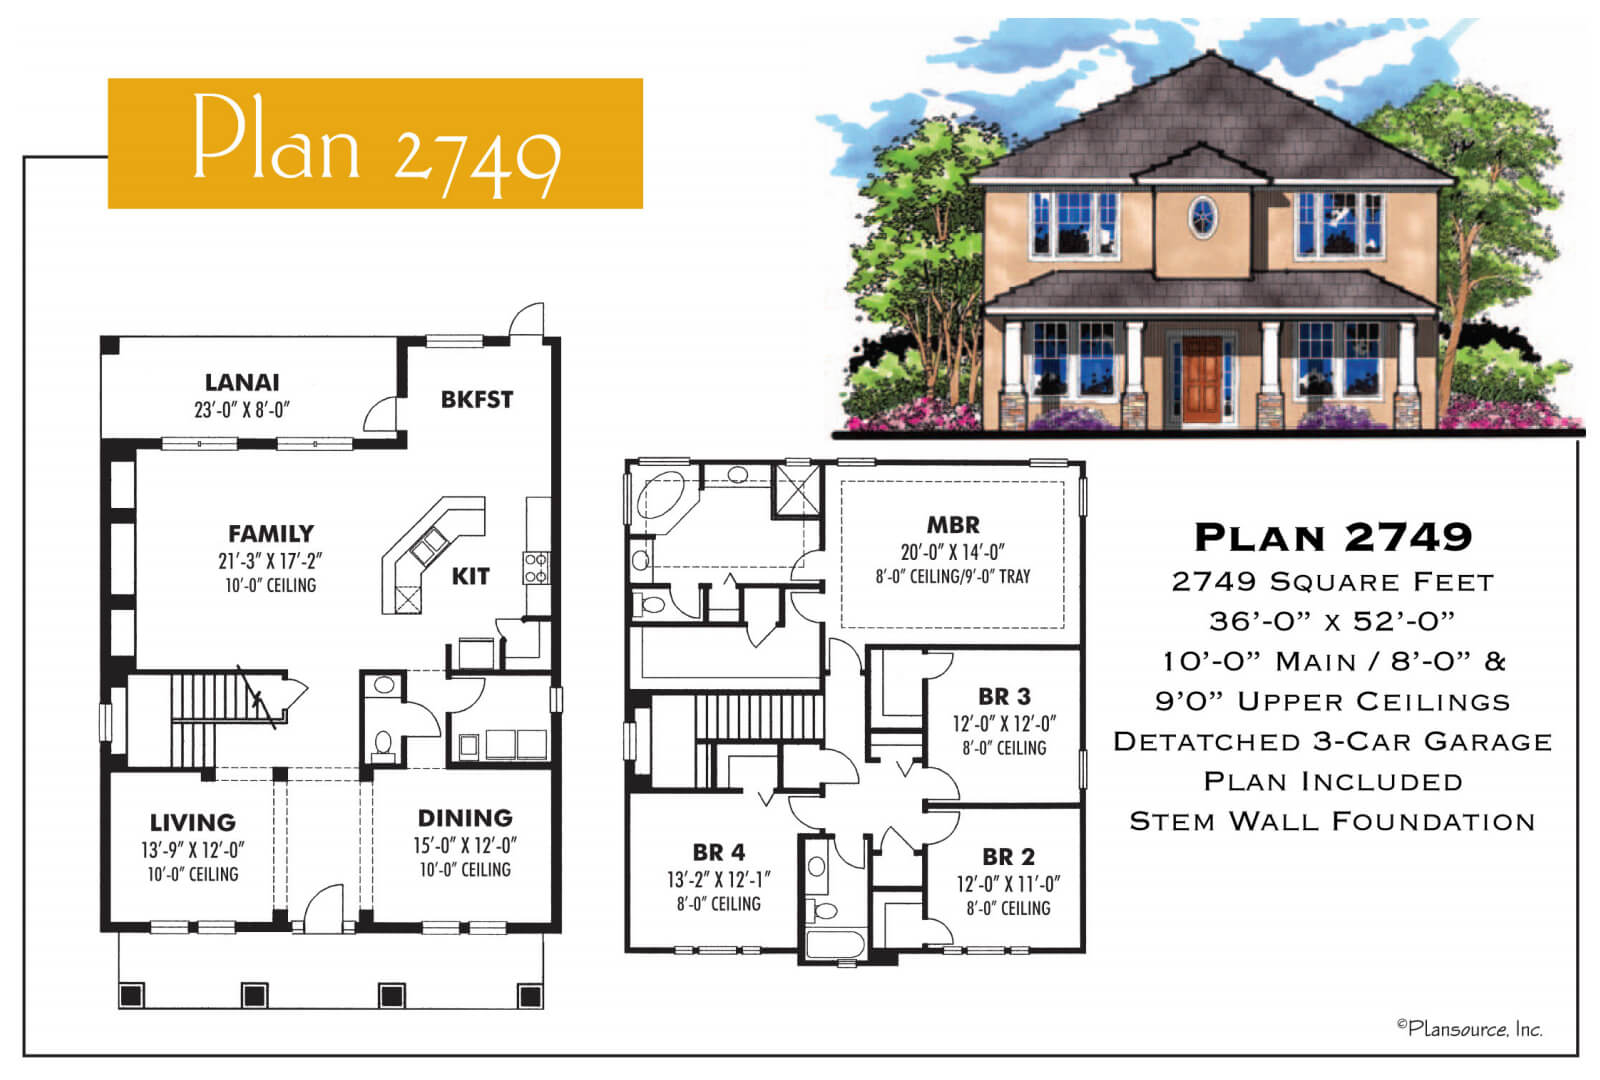 Floor Plans,2,501 SQ FT TO 3,000 SQ FT,1066